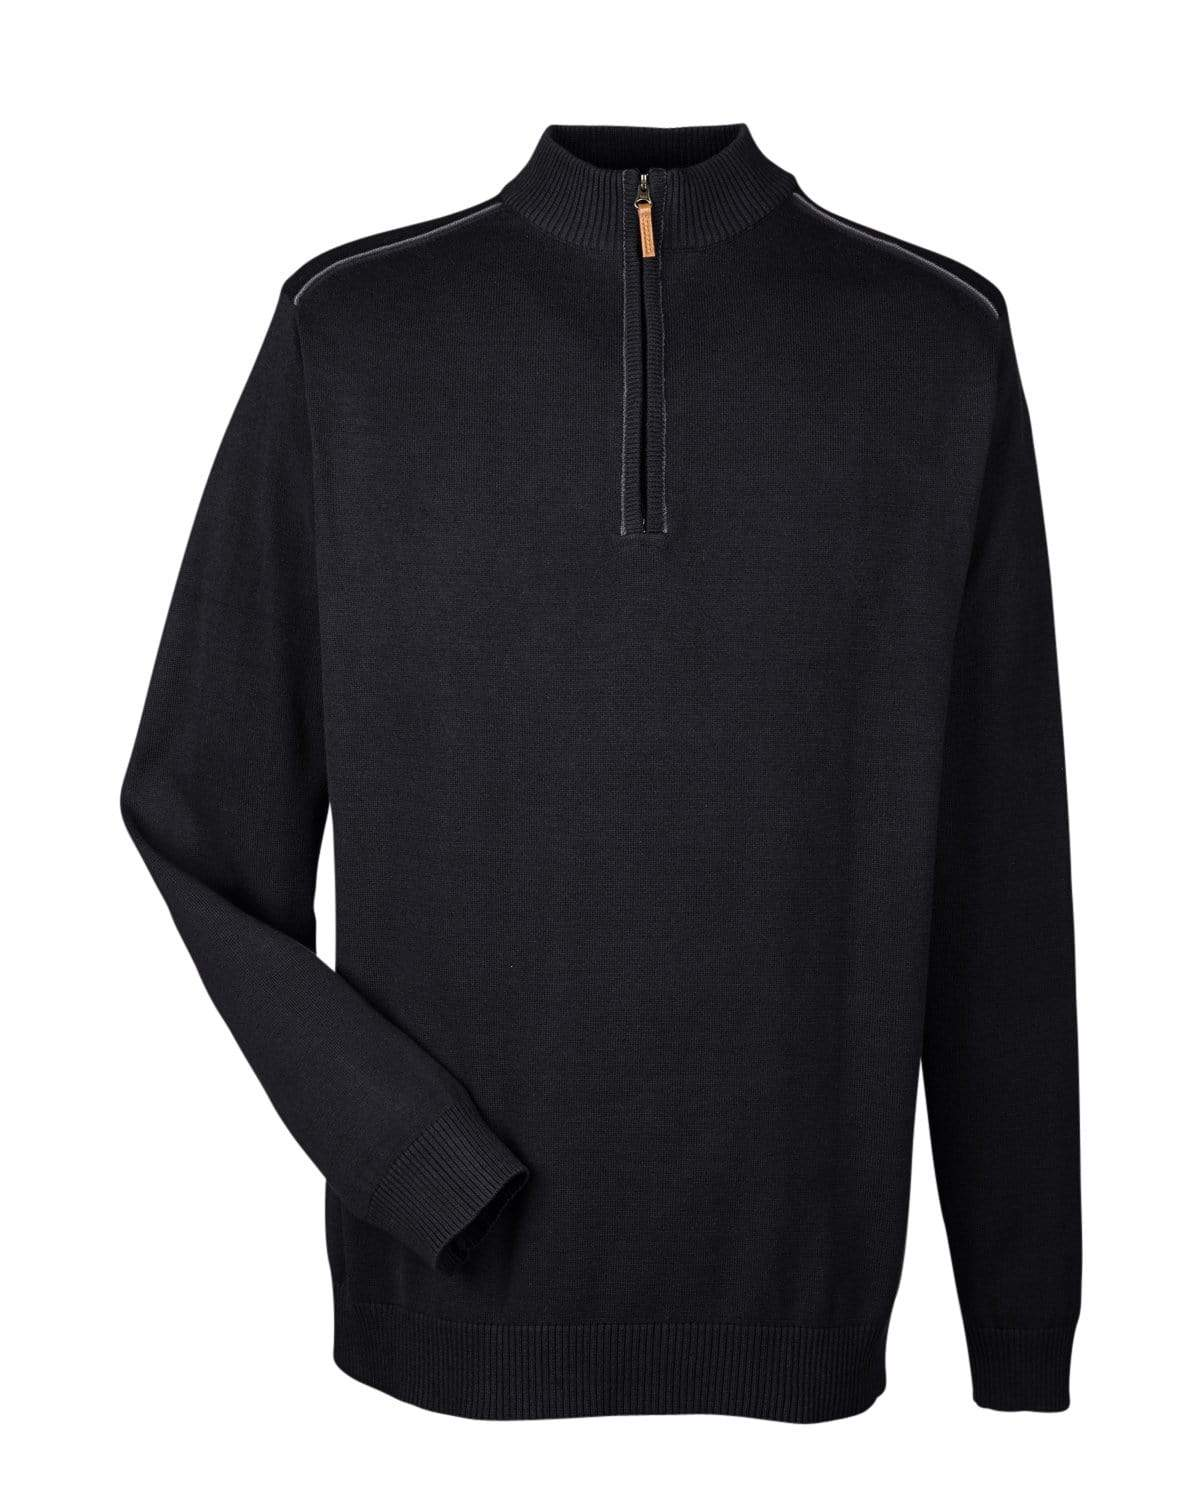 Devon & Jones Layering S / BLACK/GRAPHITE Devon & Jones Men's Manchester Quarter-Zip Sweater